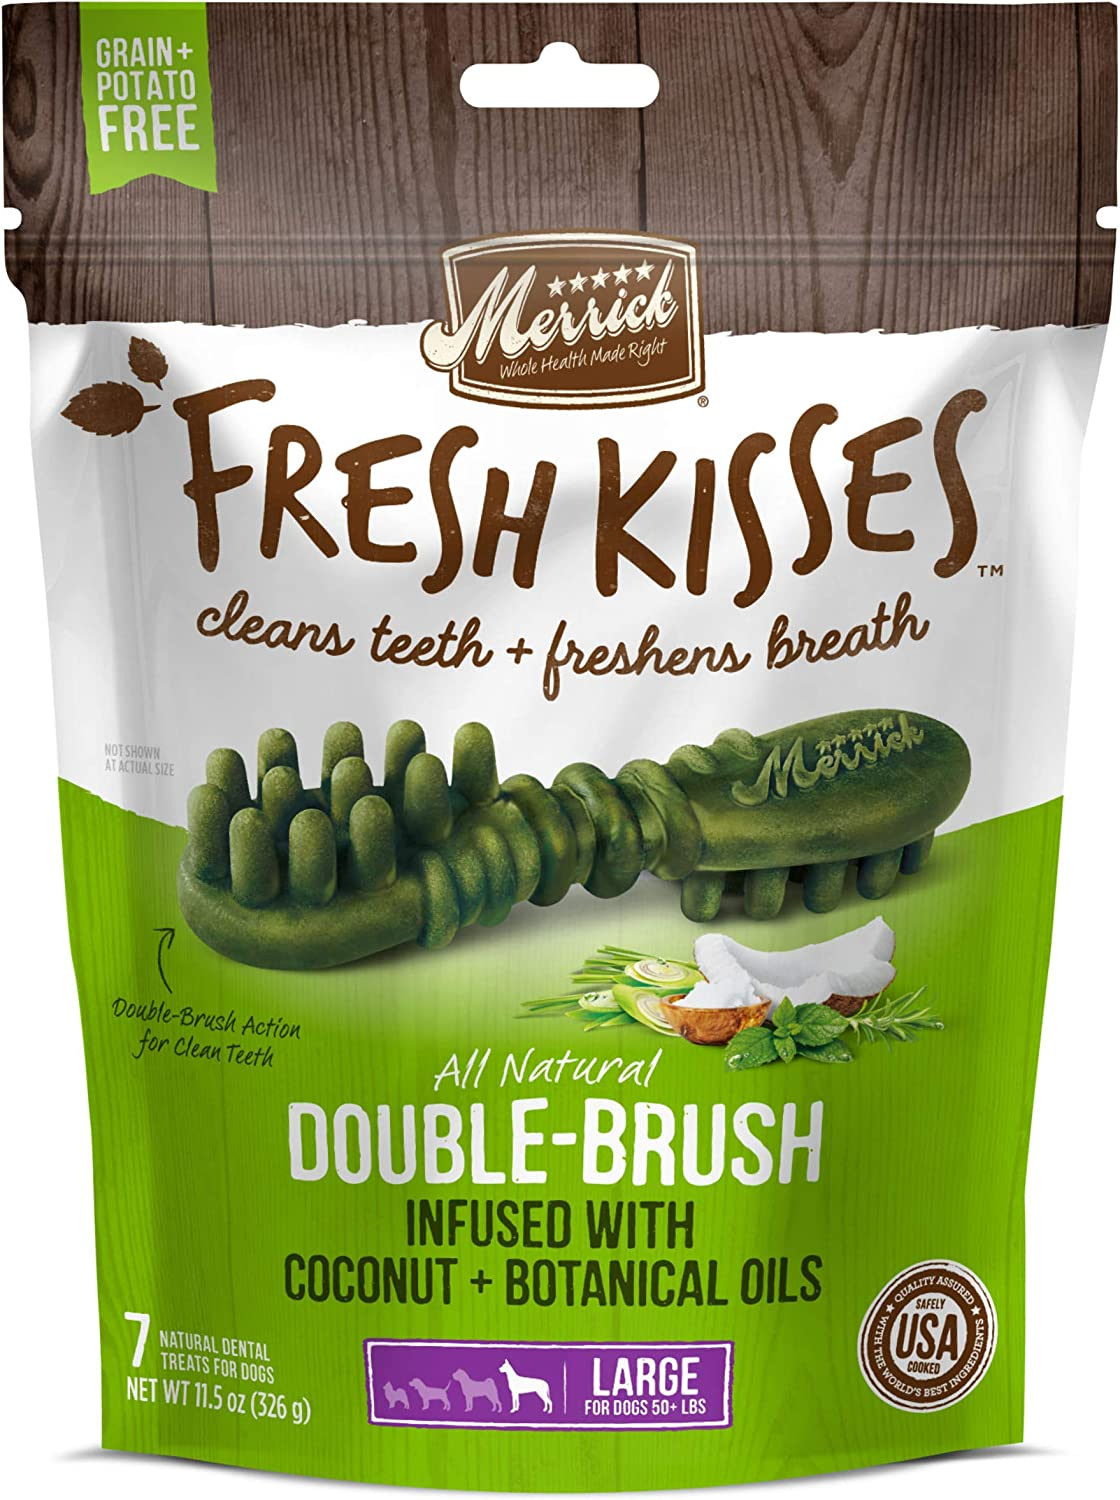 Merrick Fresh Kisses Oral Care Dental Dog Treats for Large Dogs Over 50 lbs